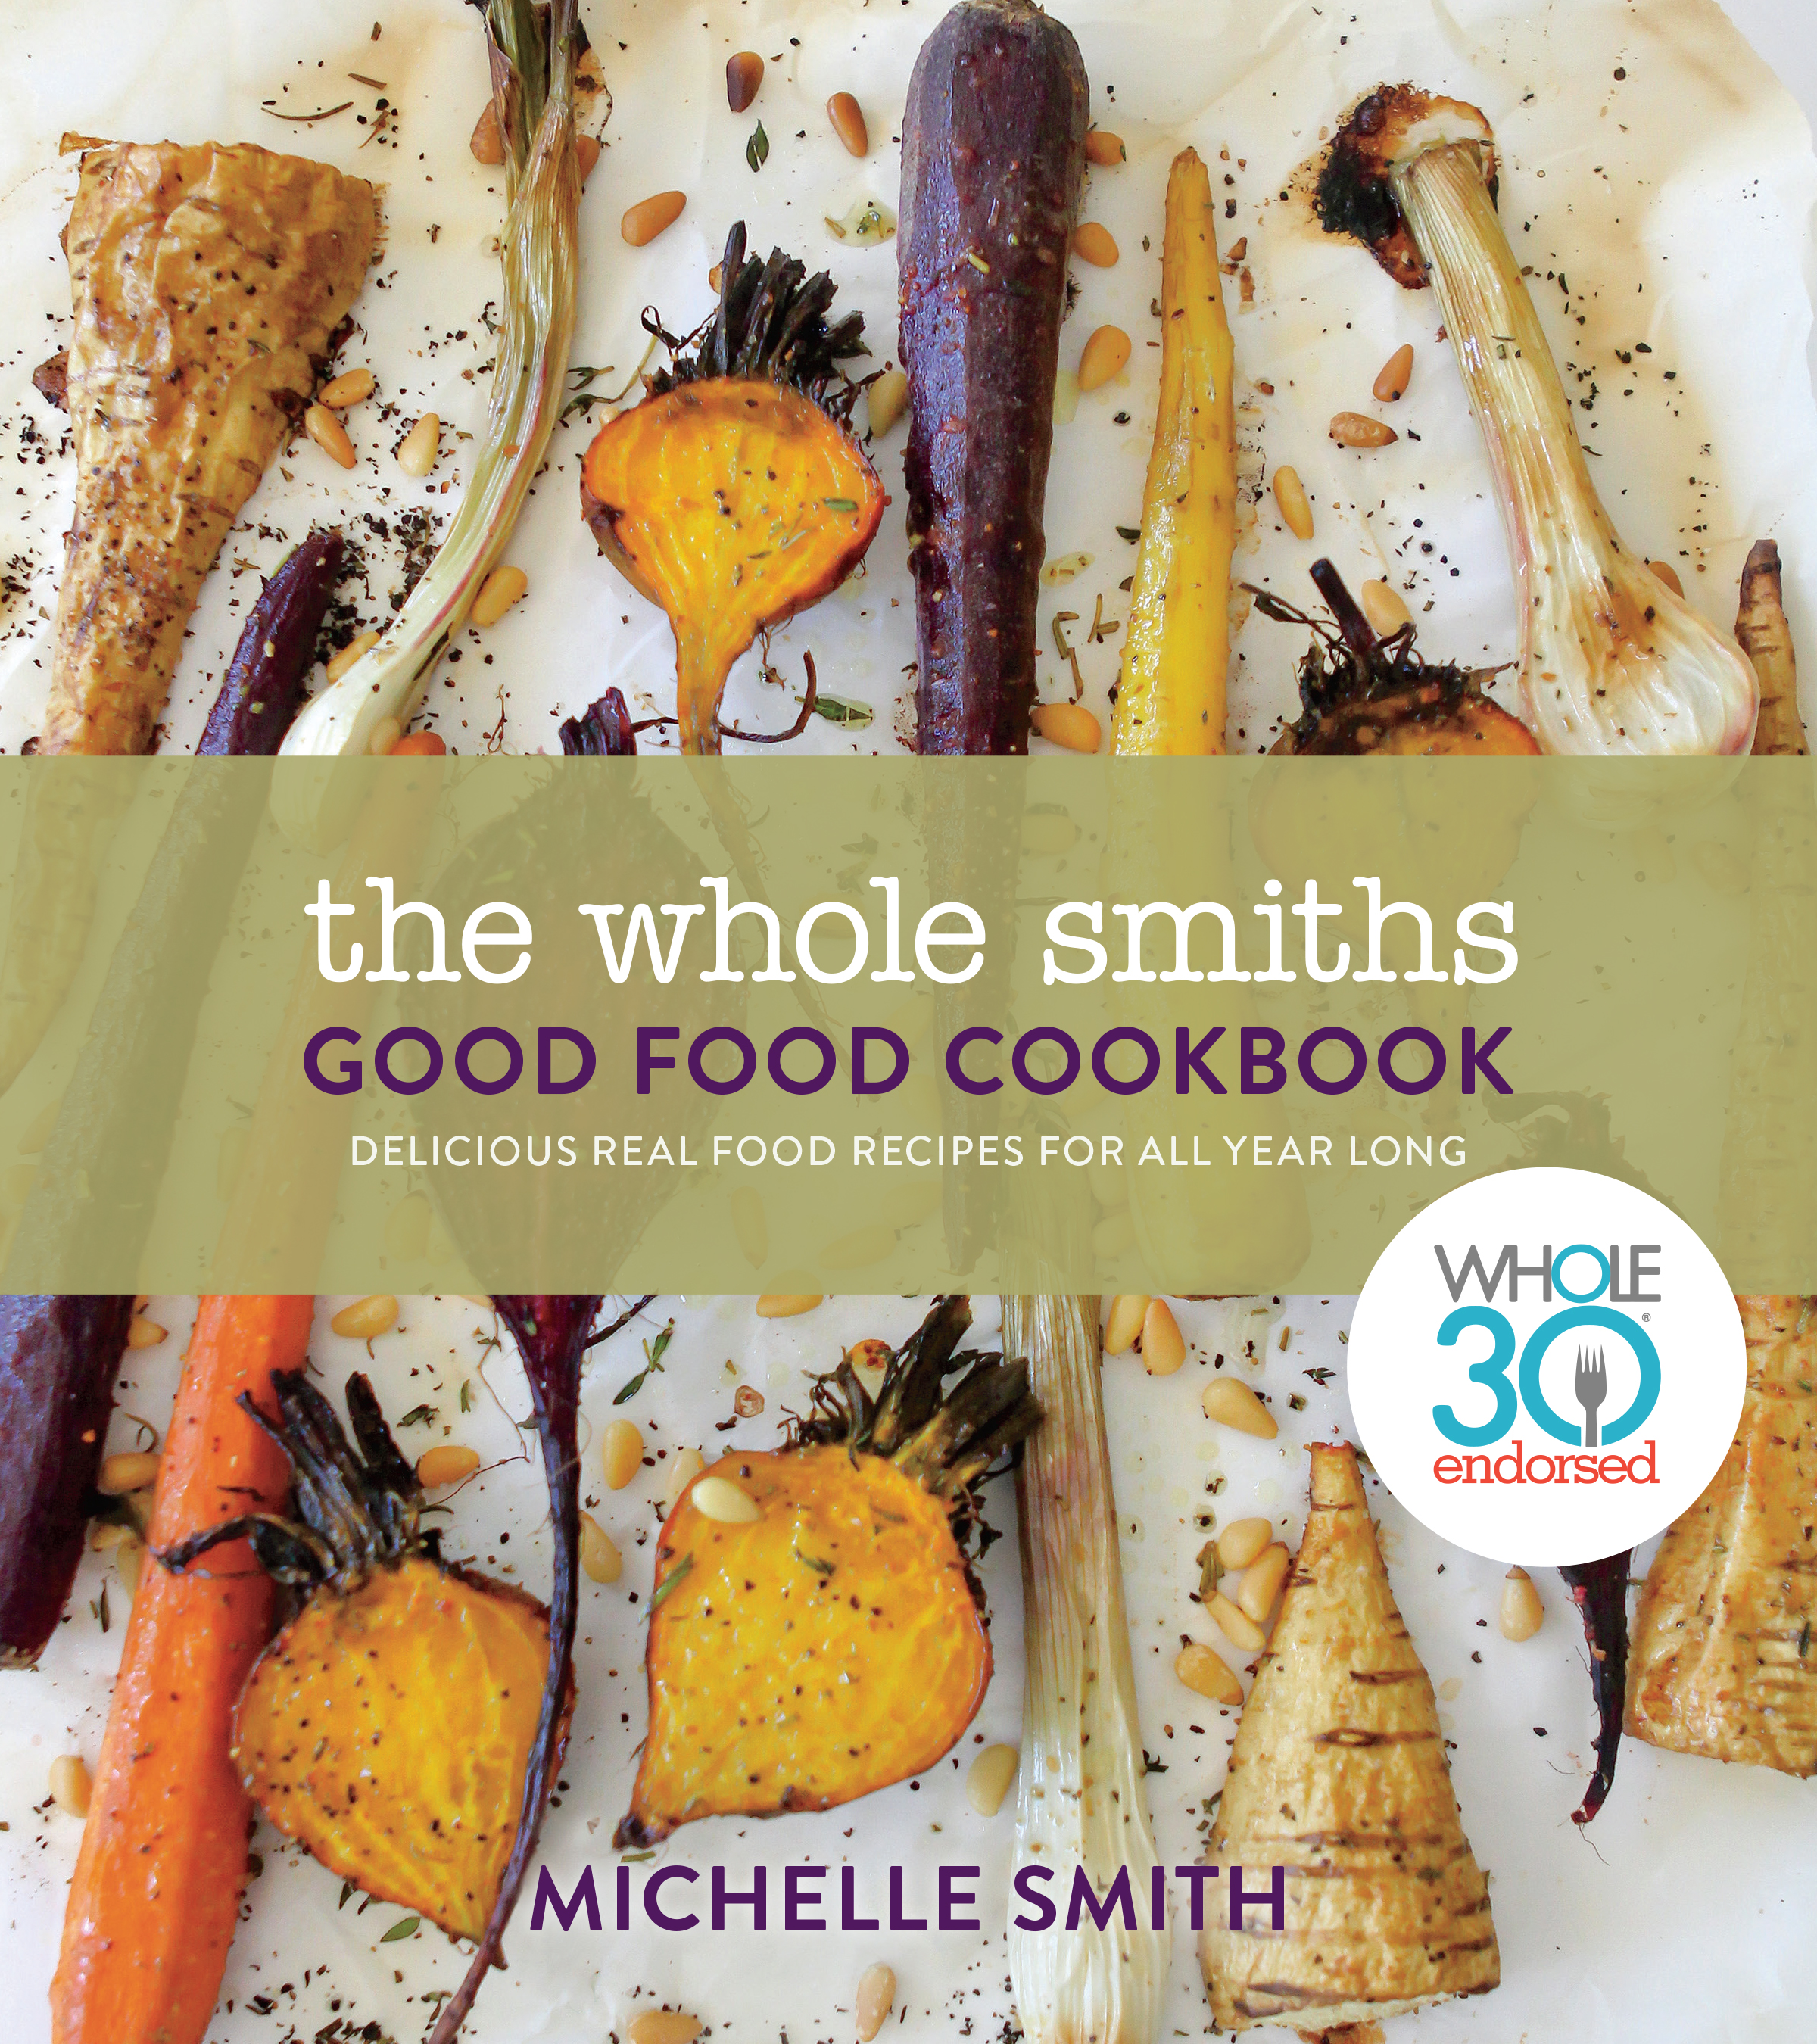 The whole smiths good food cookbook arrives june 5th pre order your copy of the whole smiths good food cookbook today its whole30 forumfinder Images